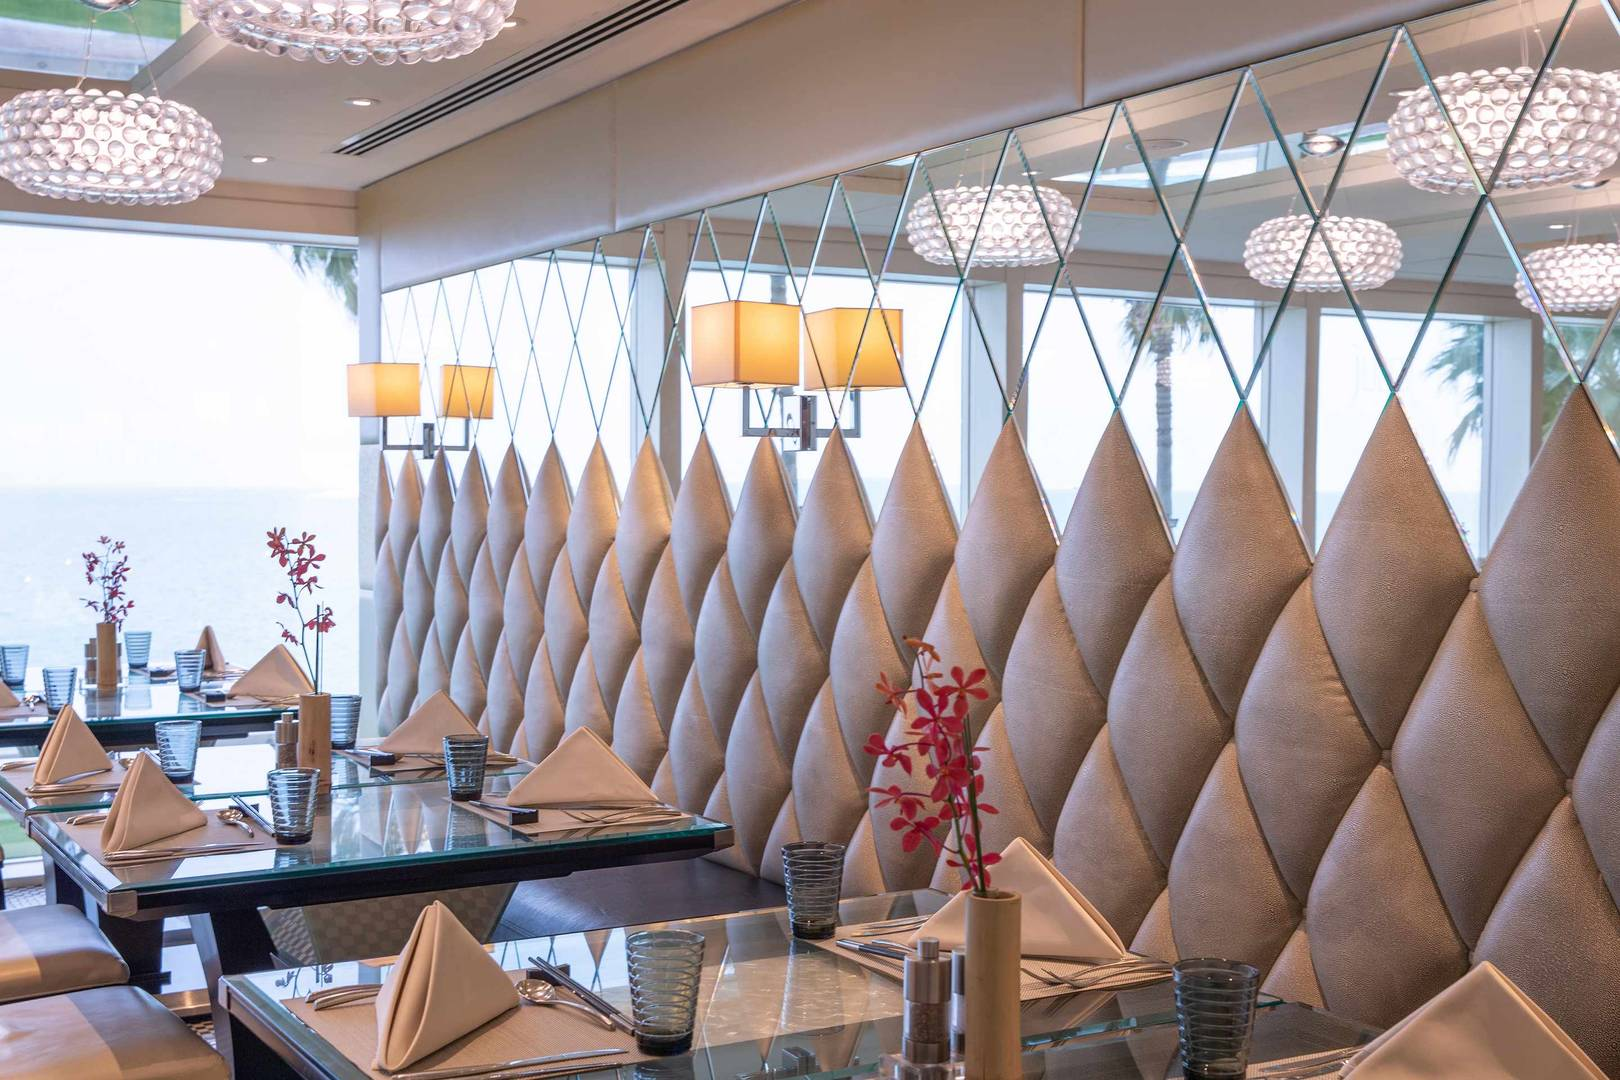 Interior of the Junsui Restaurant at Jumeirah Burj Al Arab